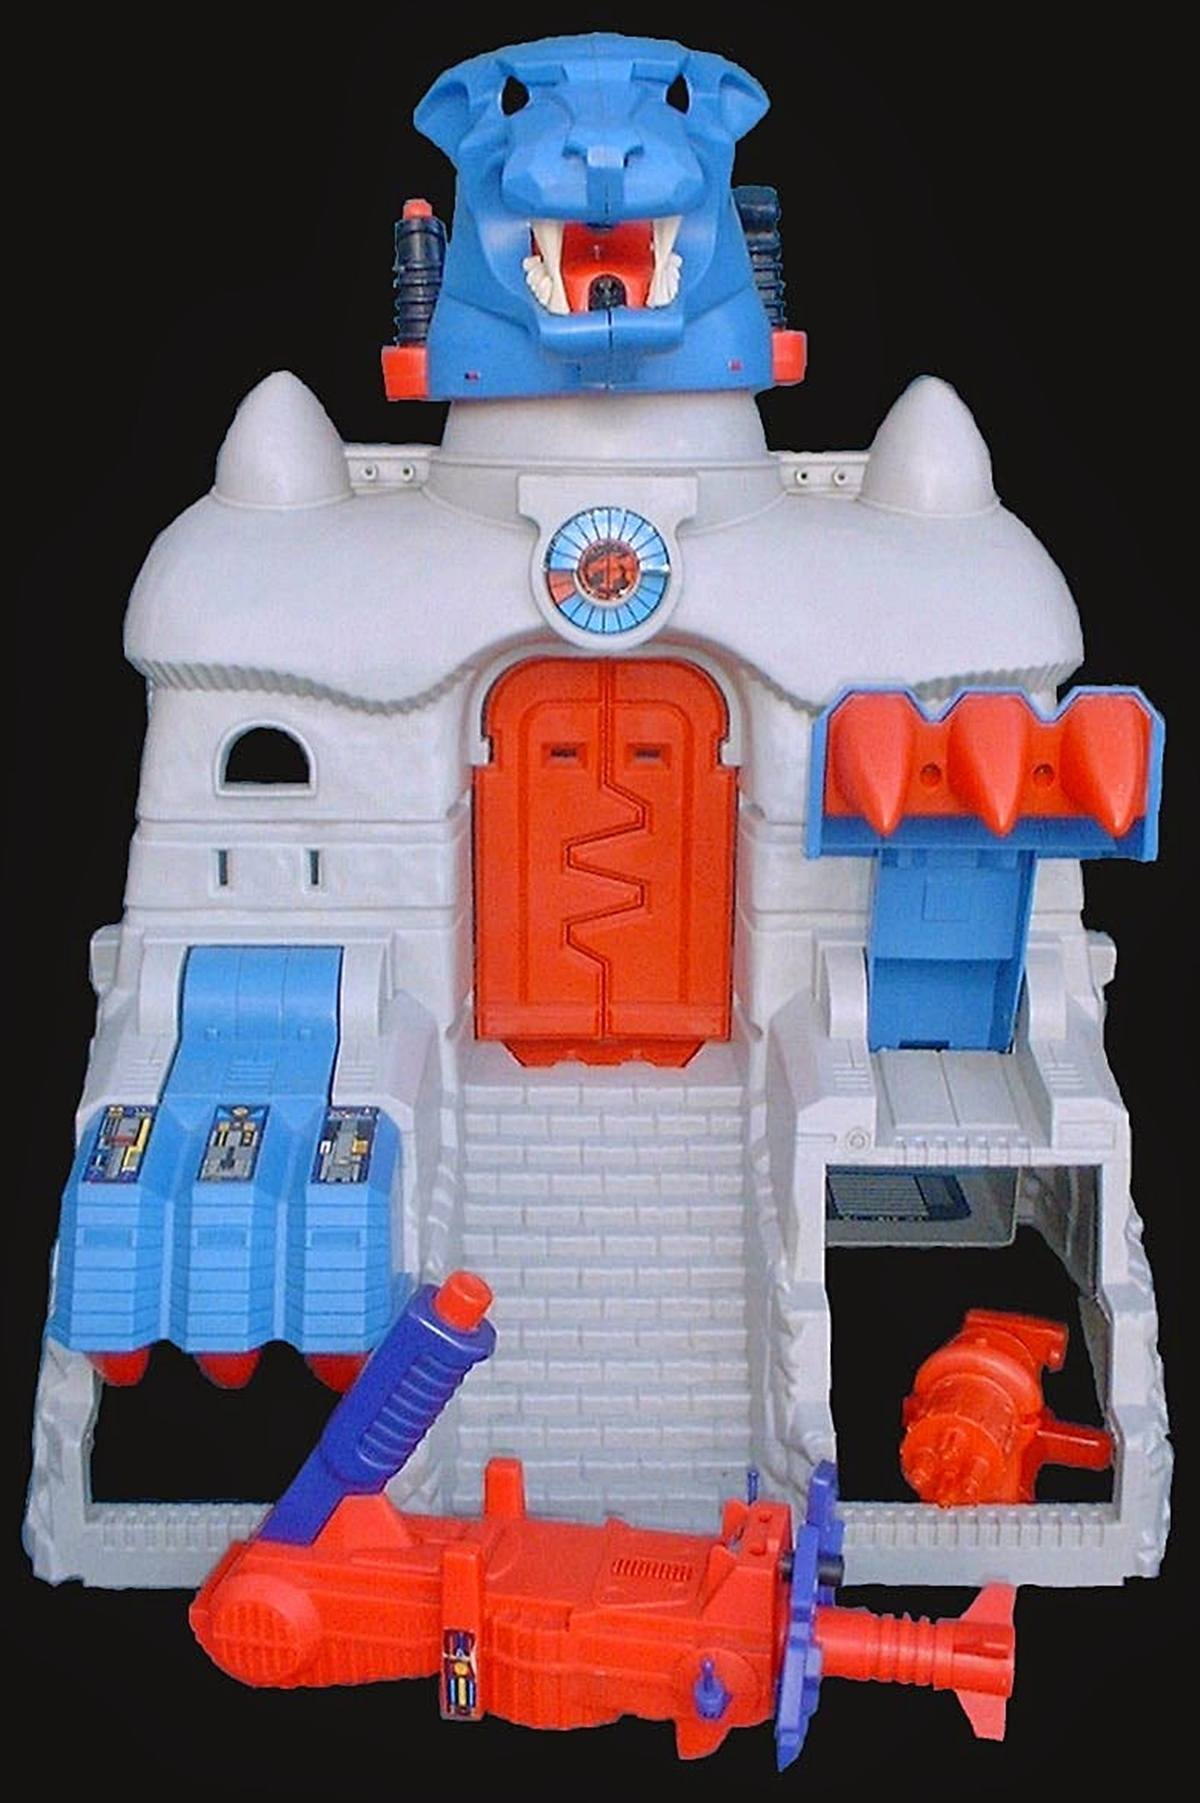 12 1 15 Amazing Toys All 80s Kids Wanted To Own!